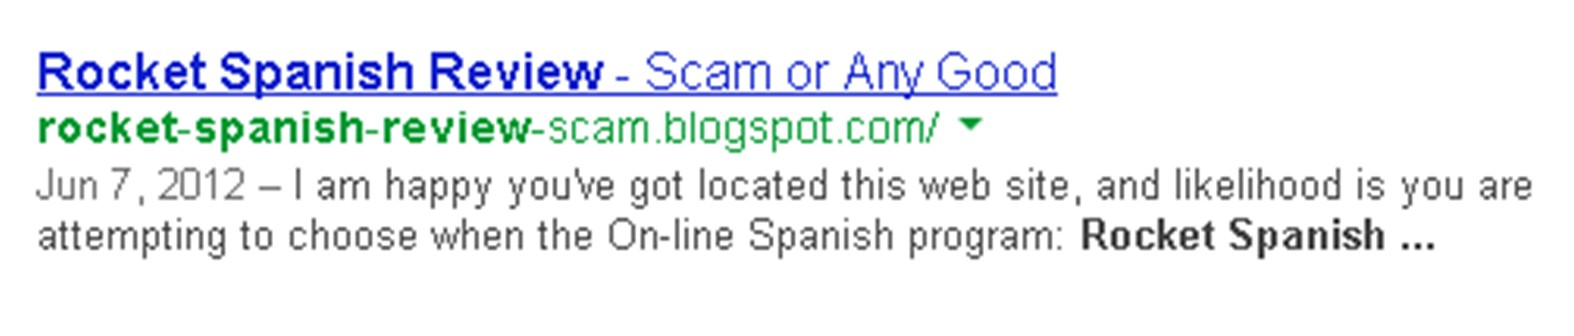 Rocket Spanish Scam